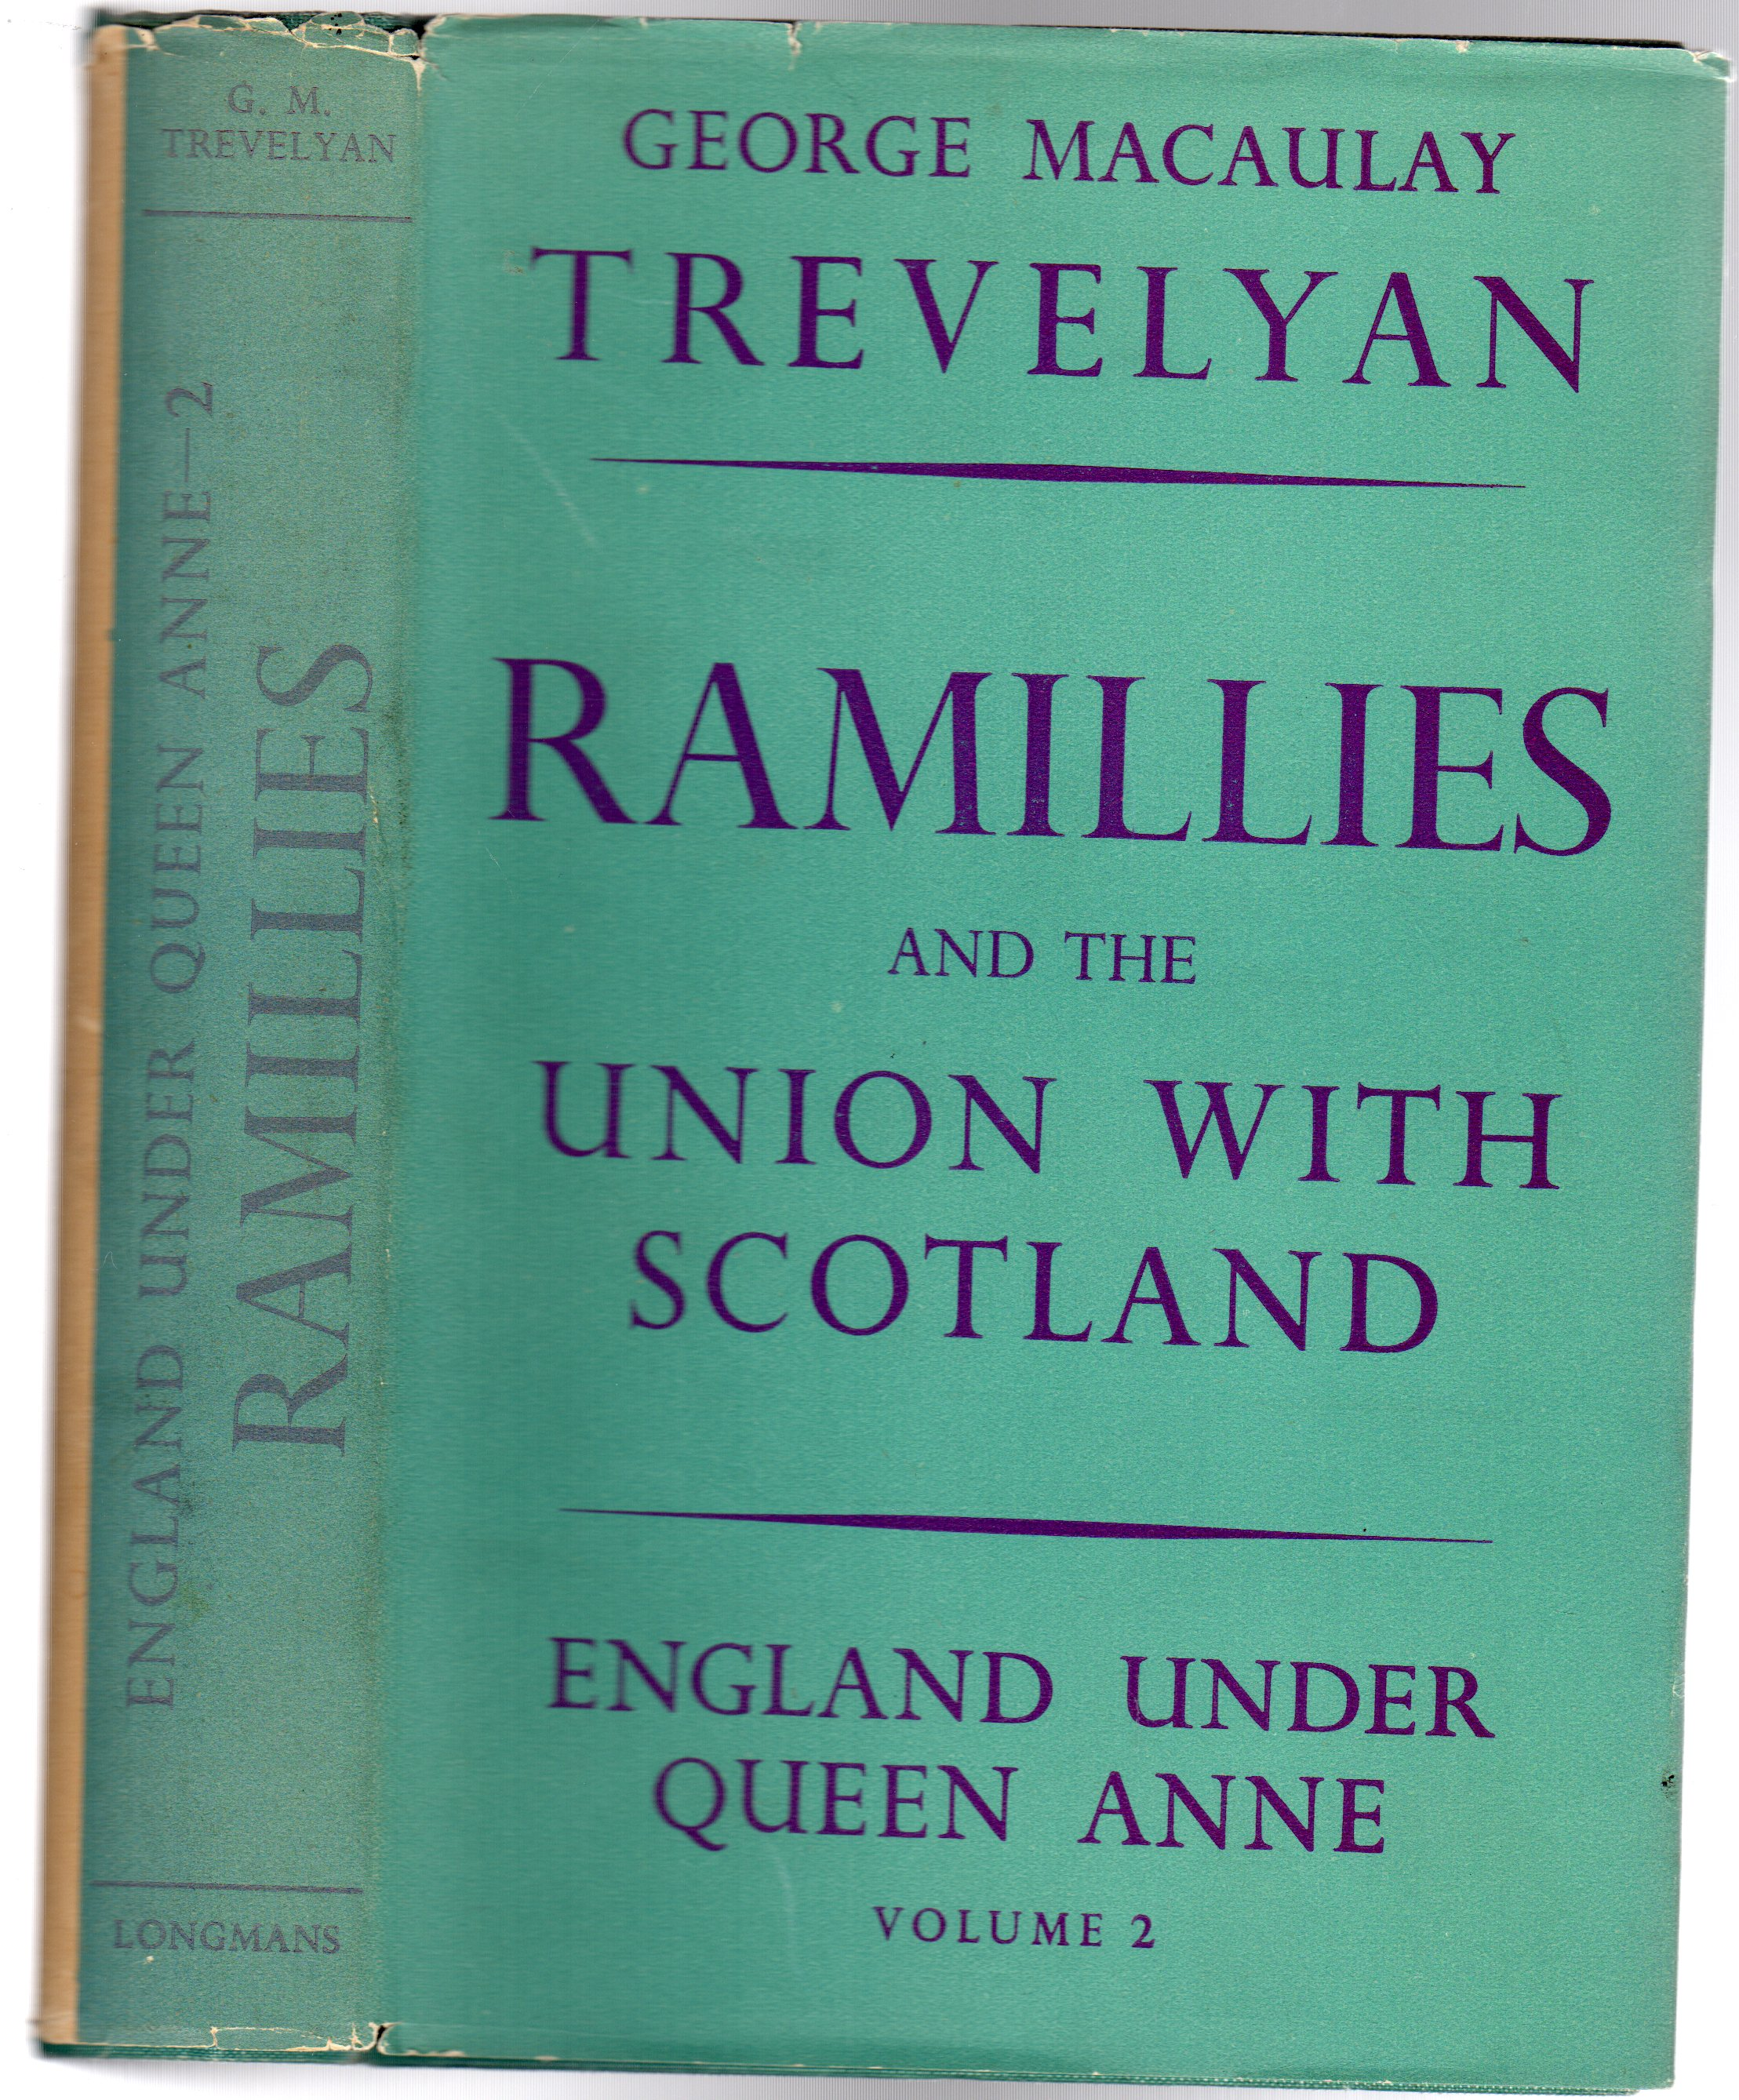 Image for England Under Queen Anne : Ramillies and the Union with Scotland.